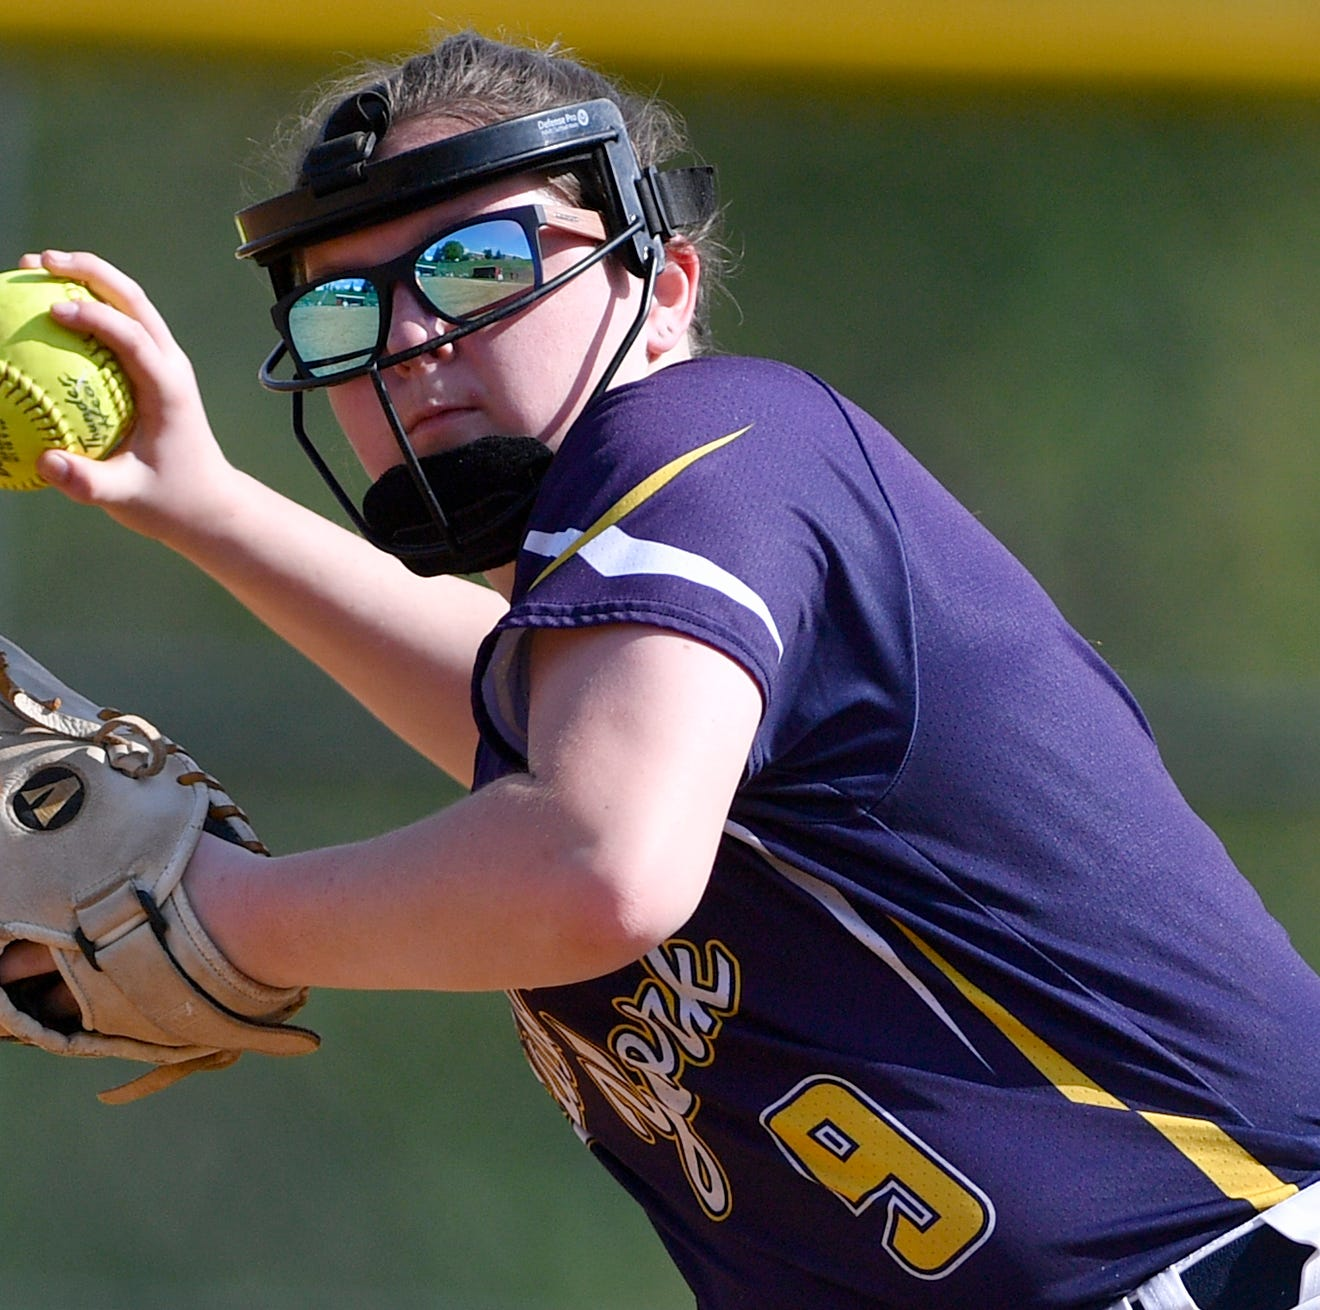 PREP ROUNDUP, MONDAY, MAY 6: Eastern York clinches first softball title in nearly 20 years